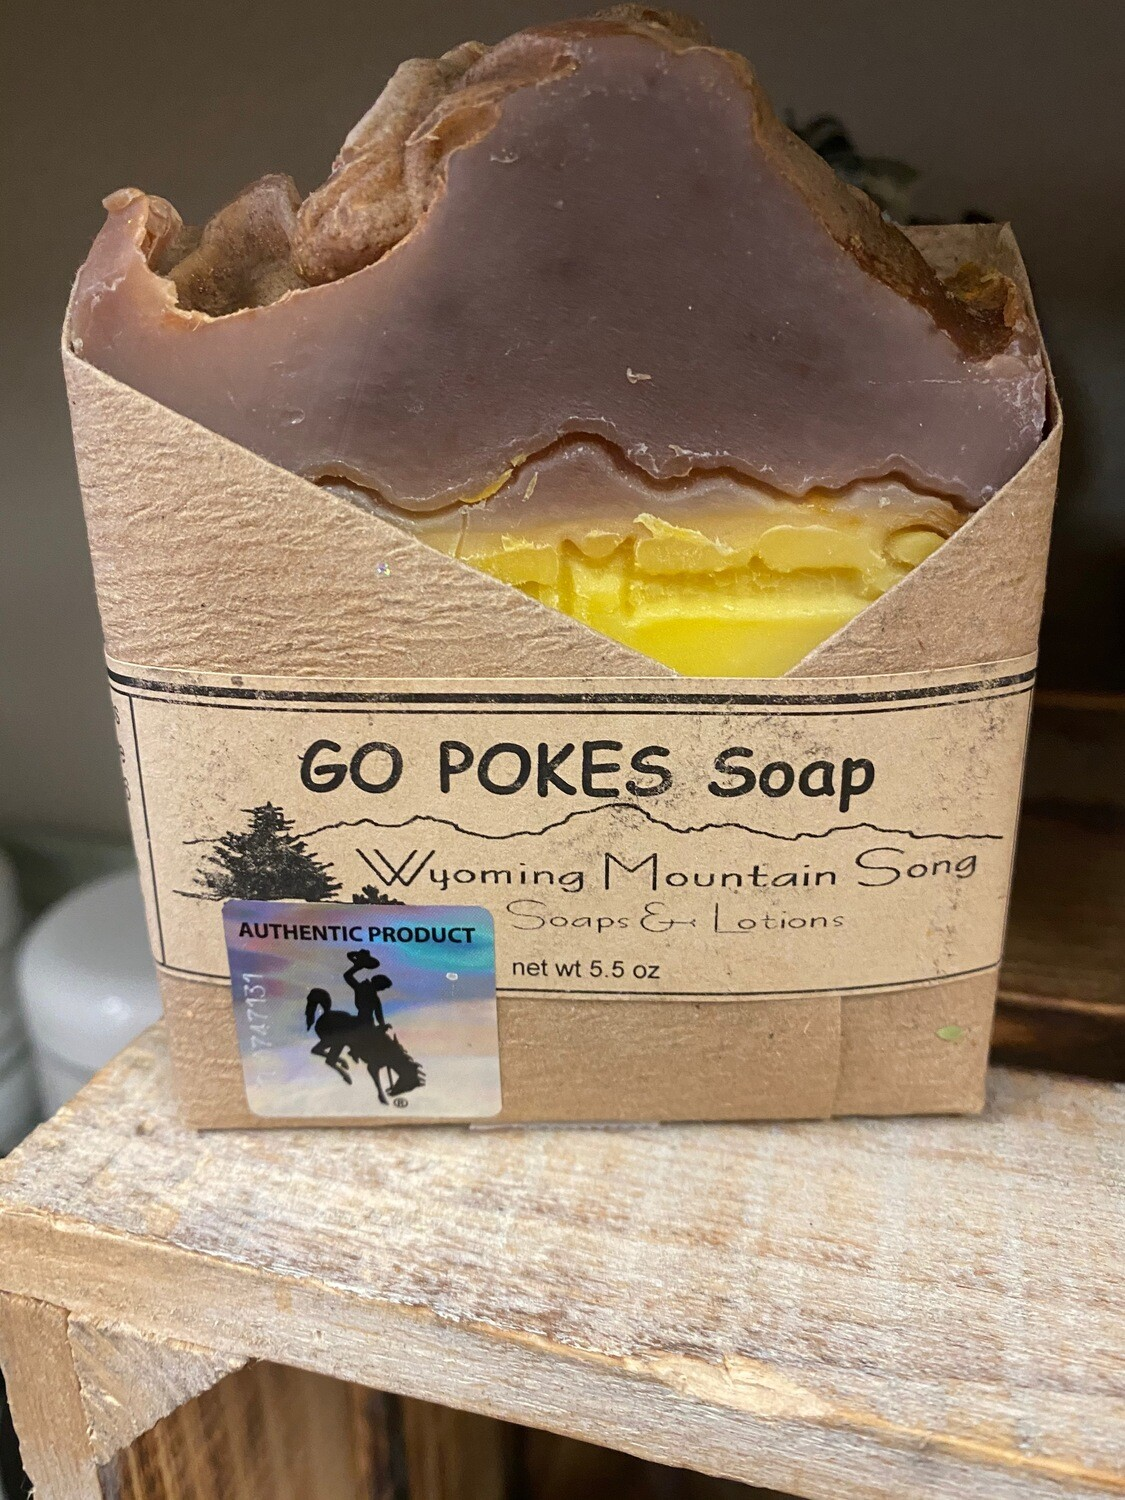 Wyoming Mountain Song soap/Go Pokes